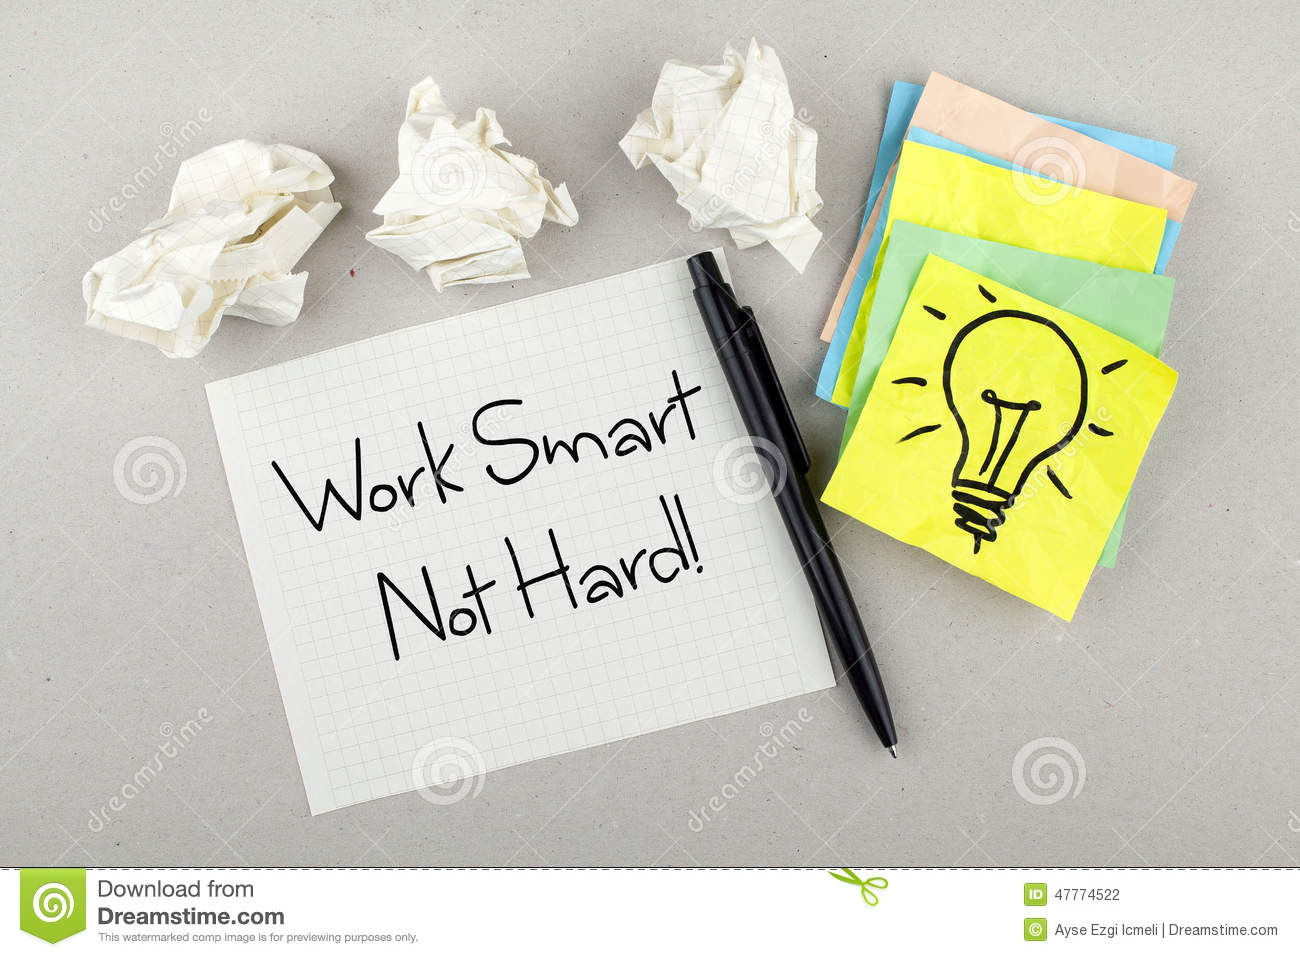 How to Work Smart, Not Hard